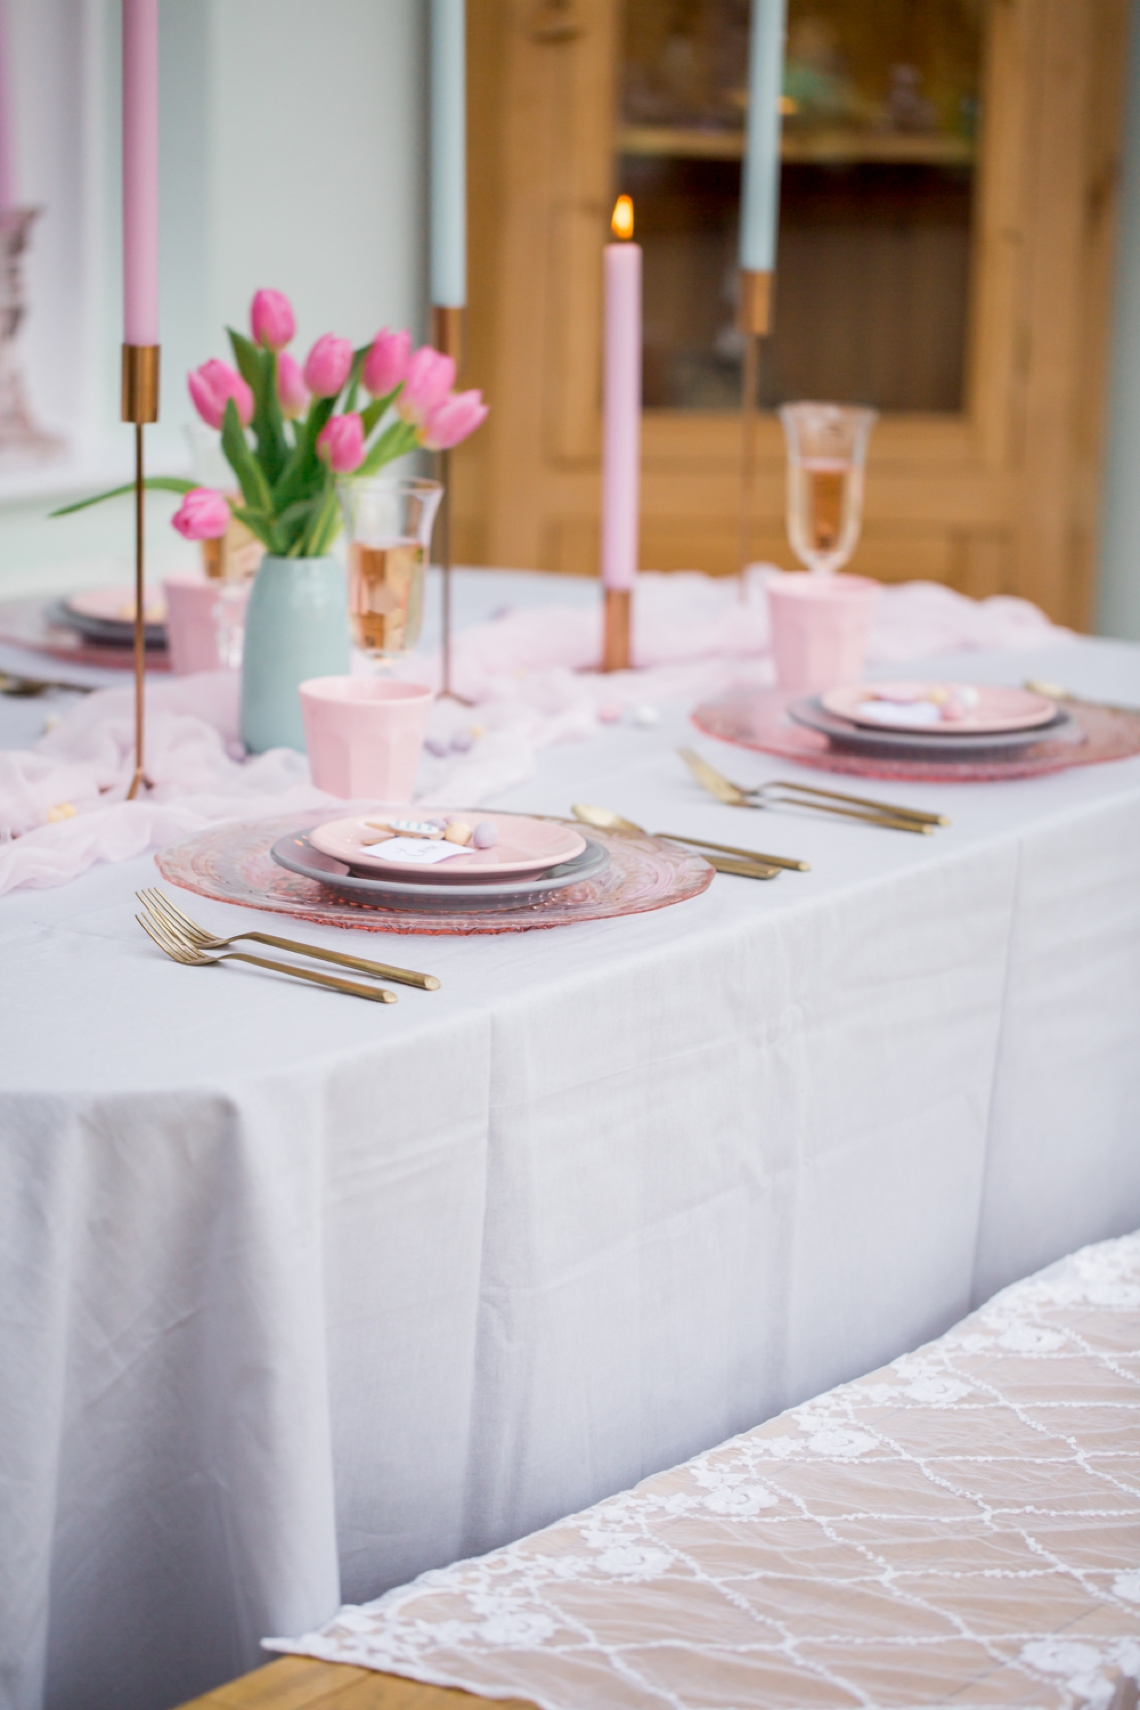 How To Create A Pretty Pastel Table Setting This Easter Bloved Blog